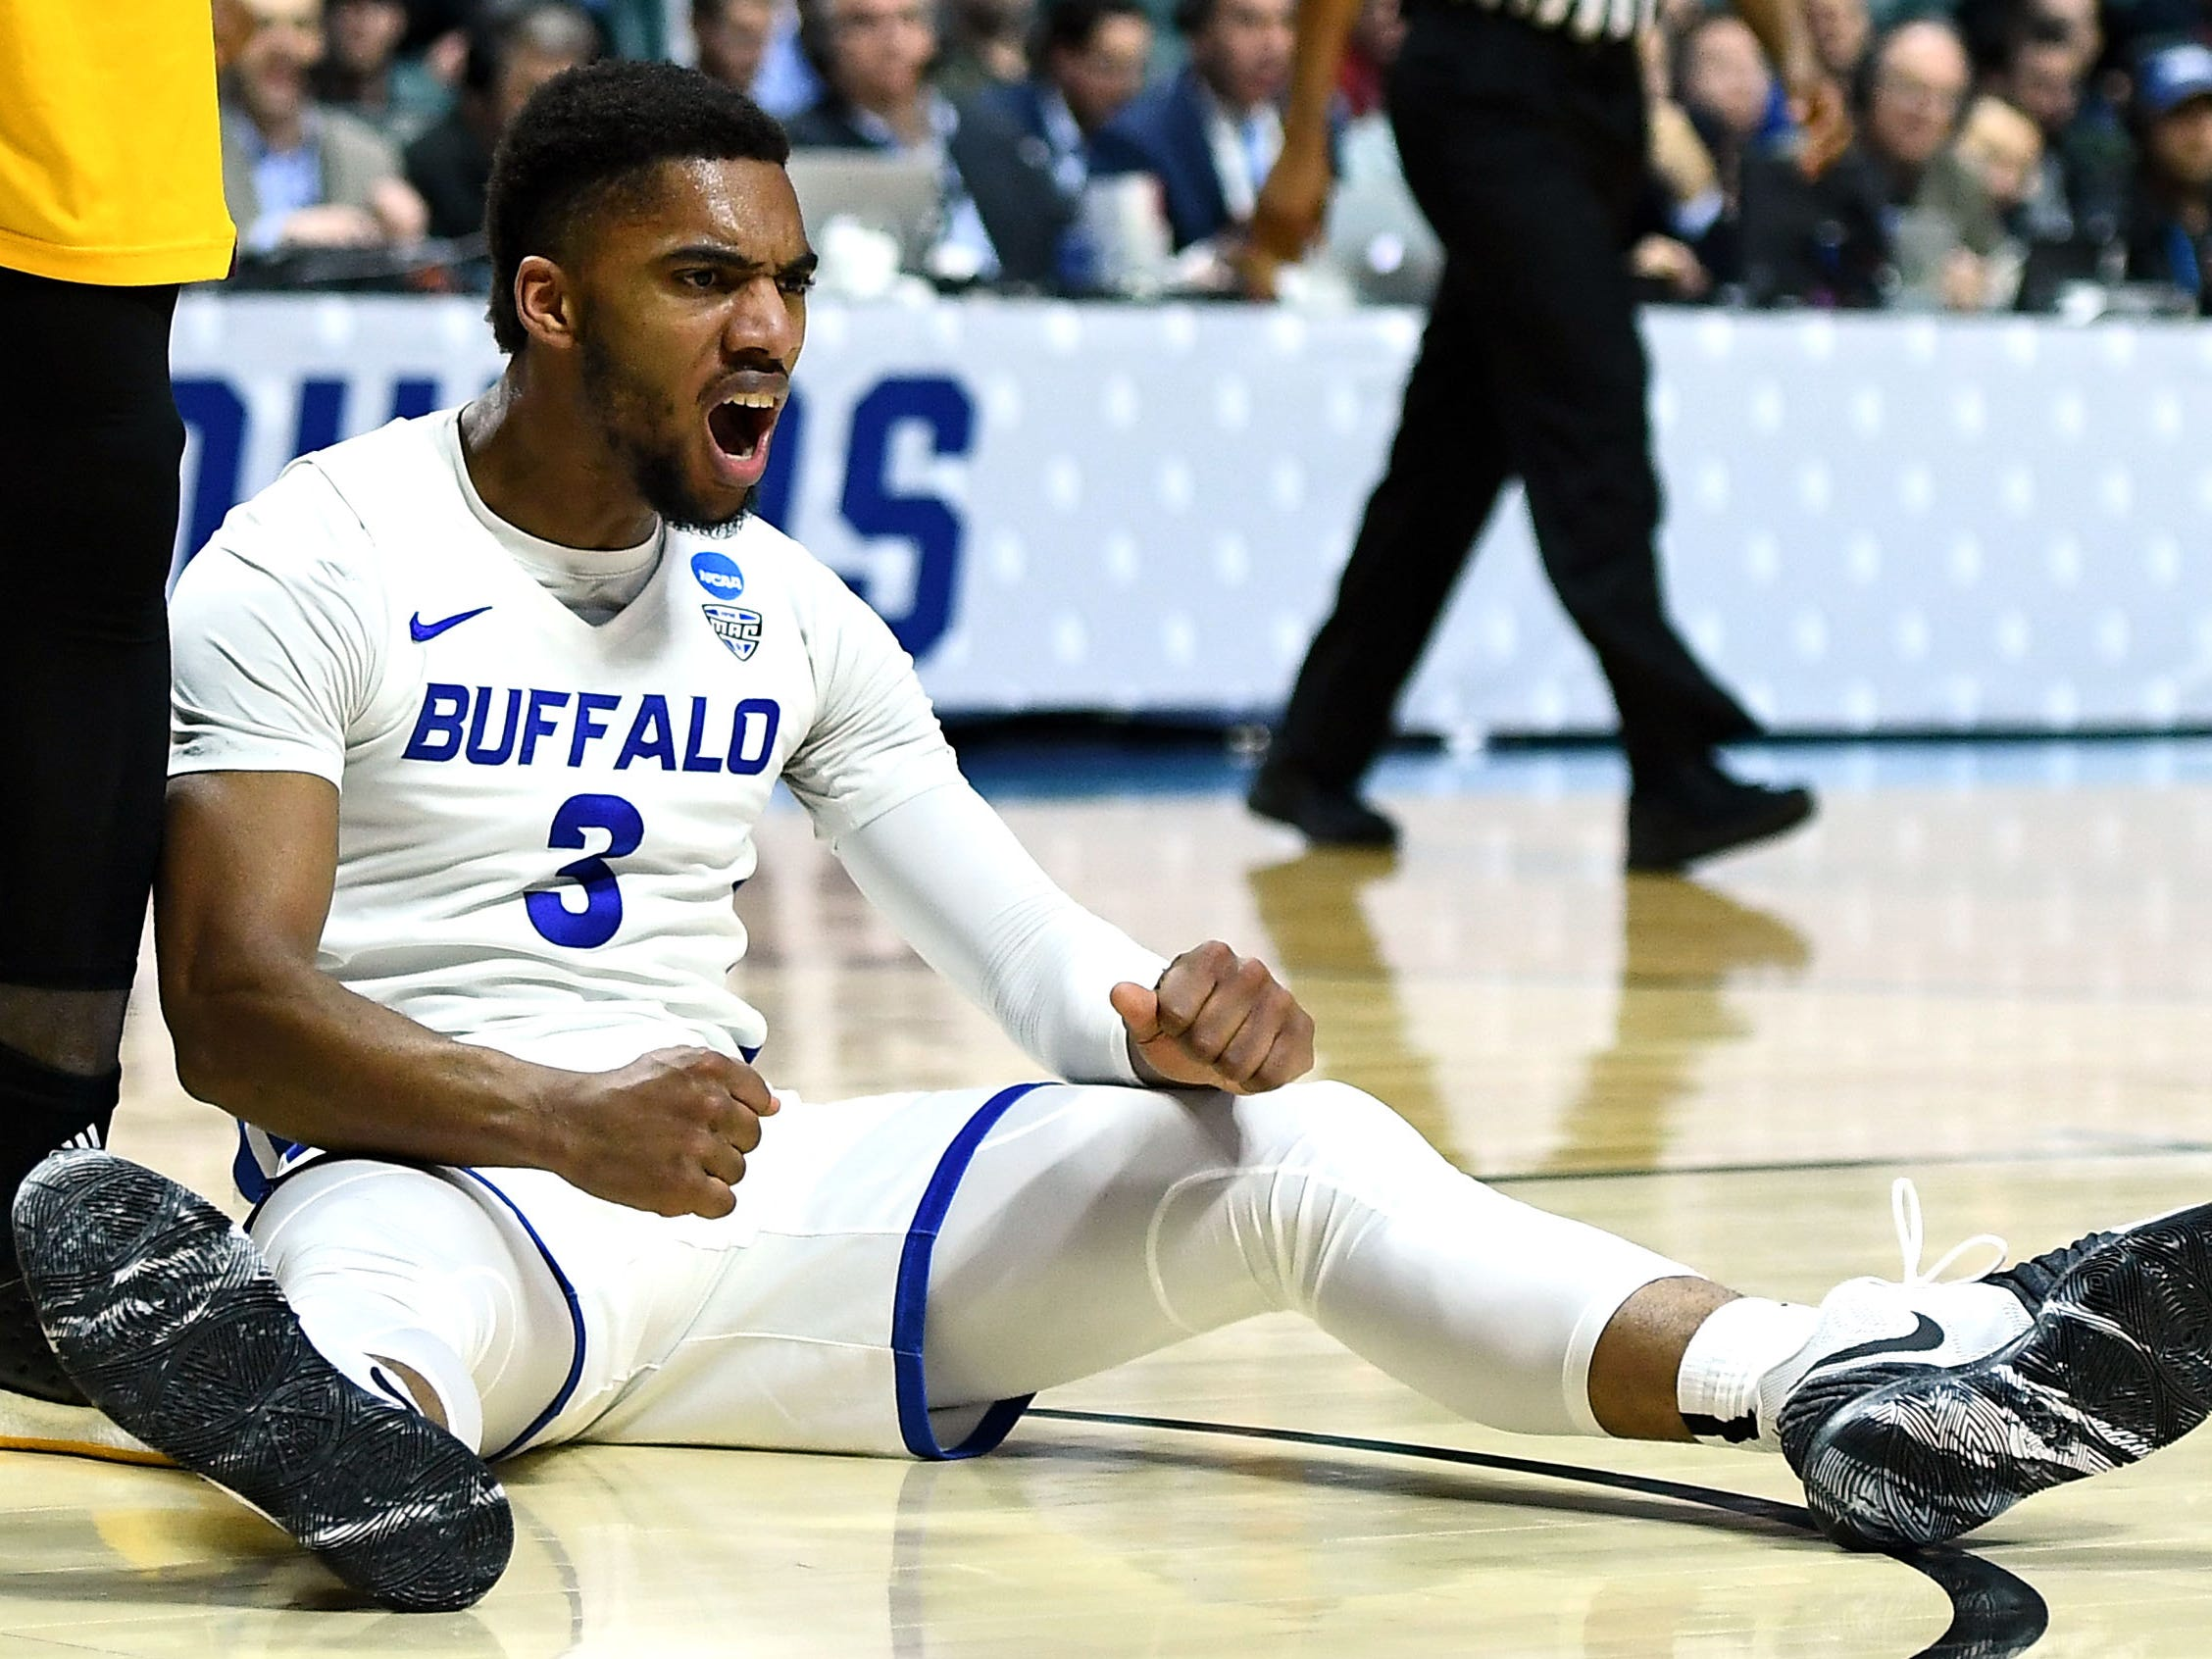 TULSA, OKLAHOMA - MARCH 22:  Jayvon Graves #3 of the Buffalo Bulls reacts after being fouled while playing the Arizona State Sun Devils during the second half of the first round game of the 2019 NCAA Men's Basketball Tournament at BOK Center on March 22, 2019 in Tulsa, Oklahoma. (Photo by Stacy Revere/Getty Images)